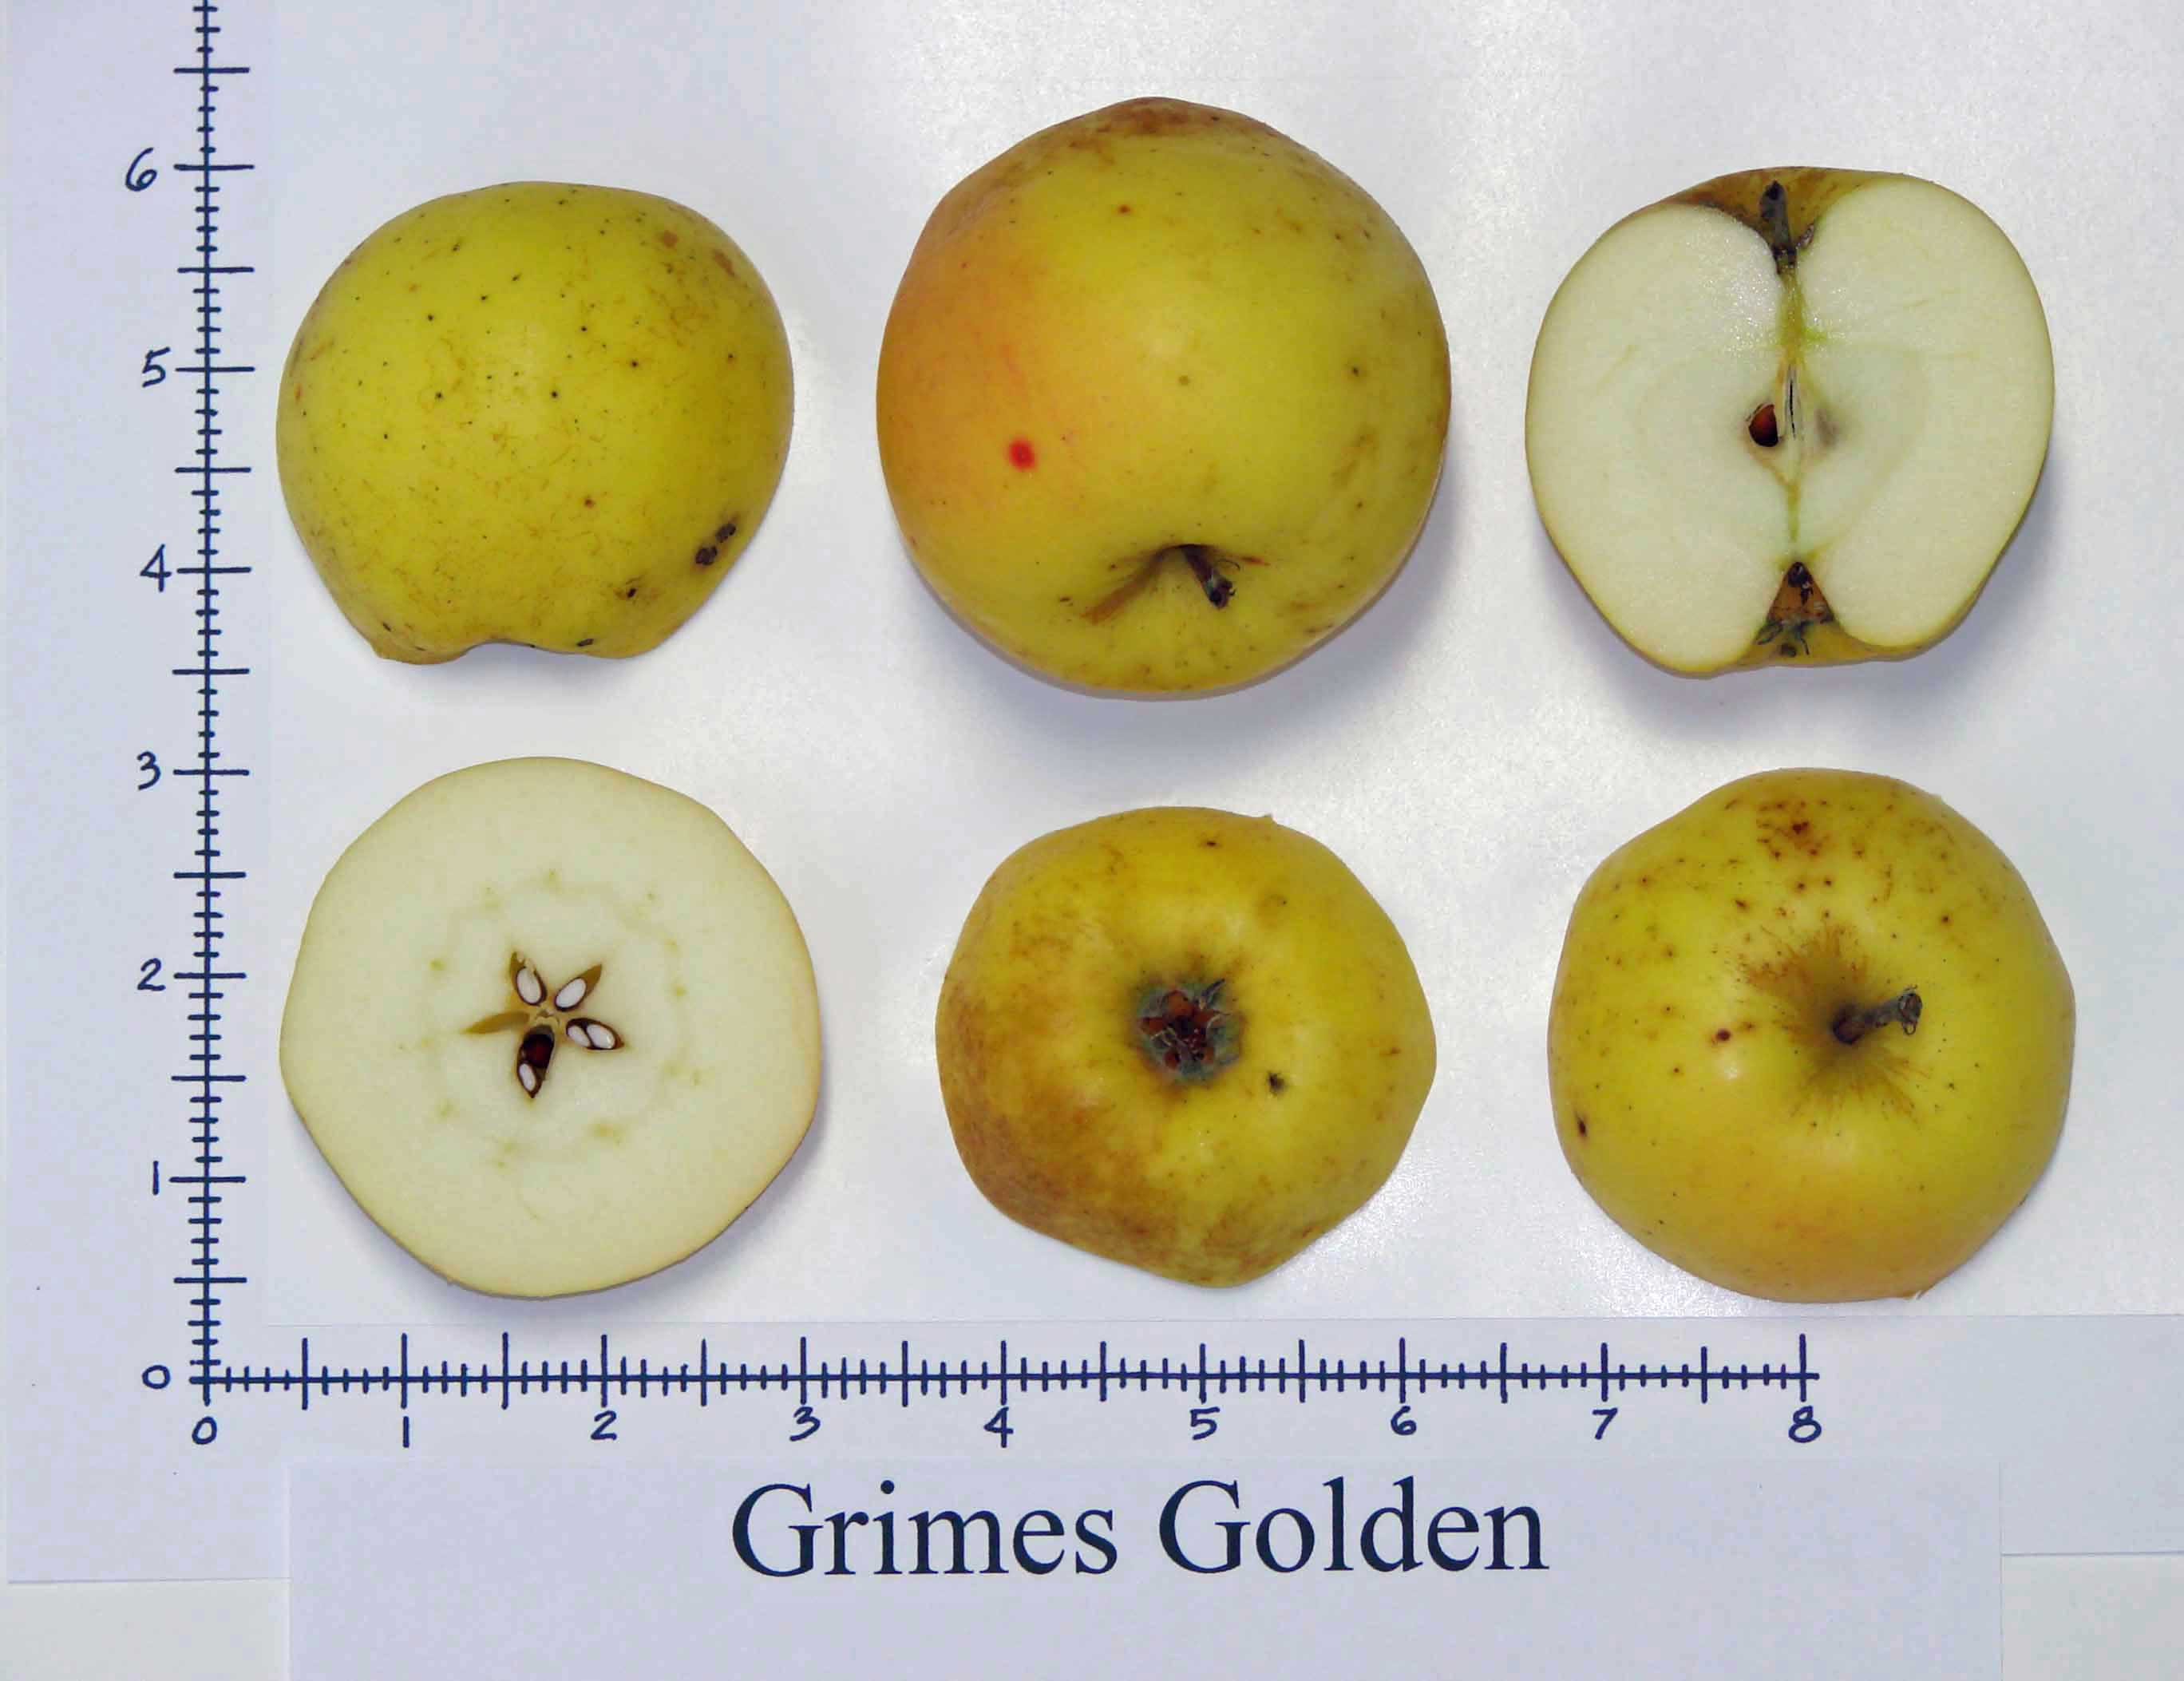 Grimes Golden